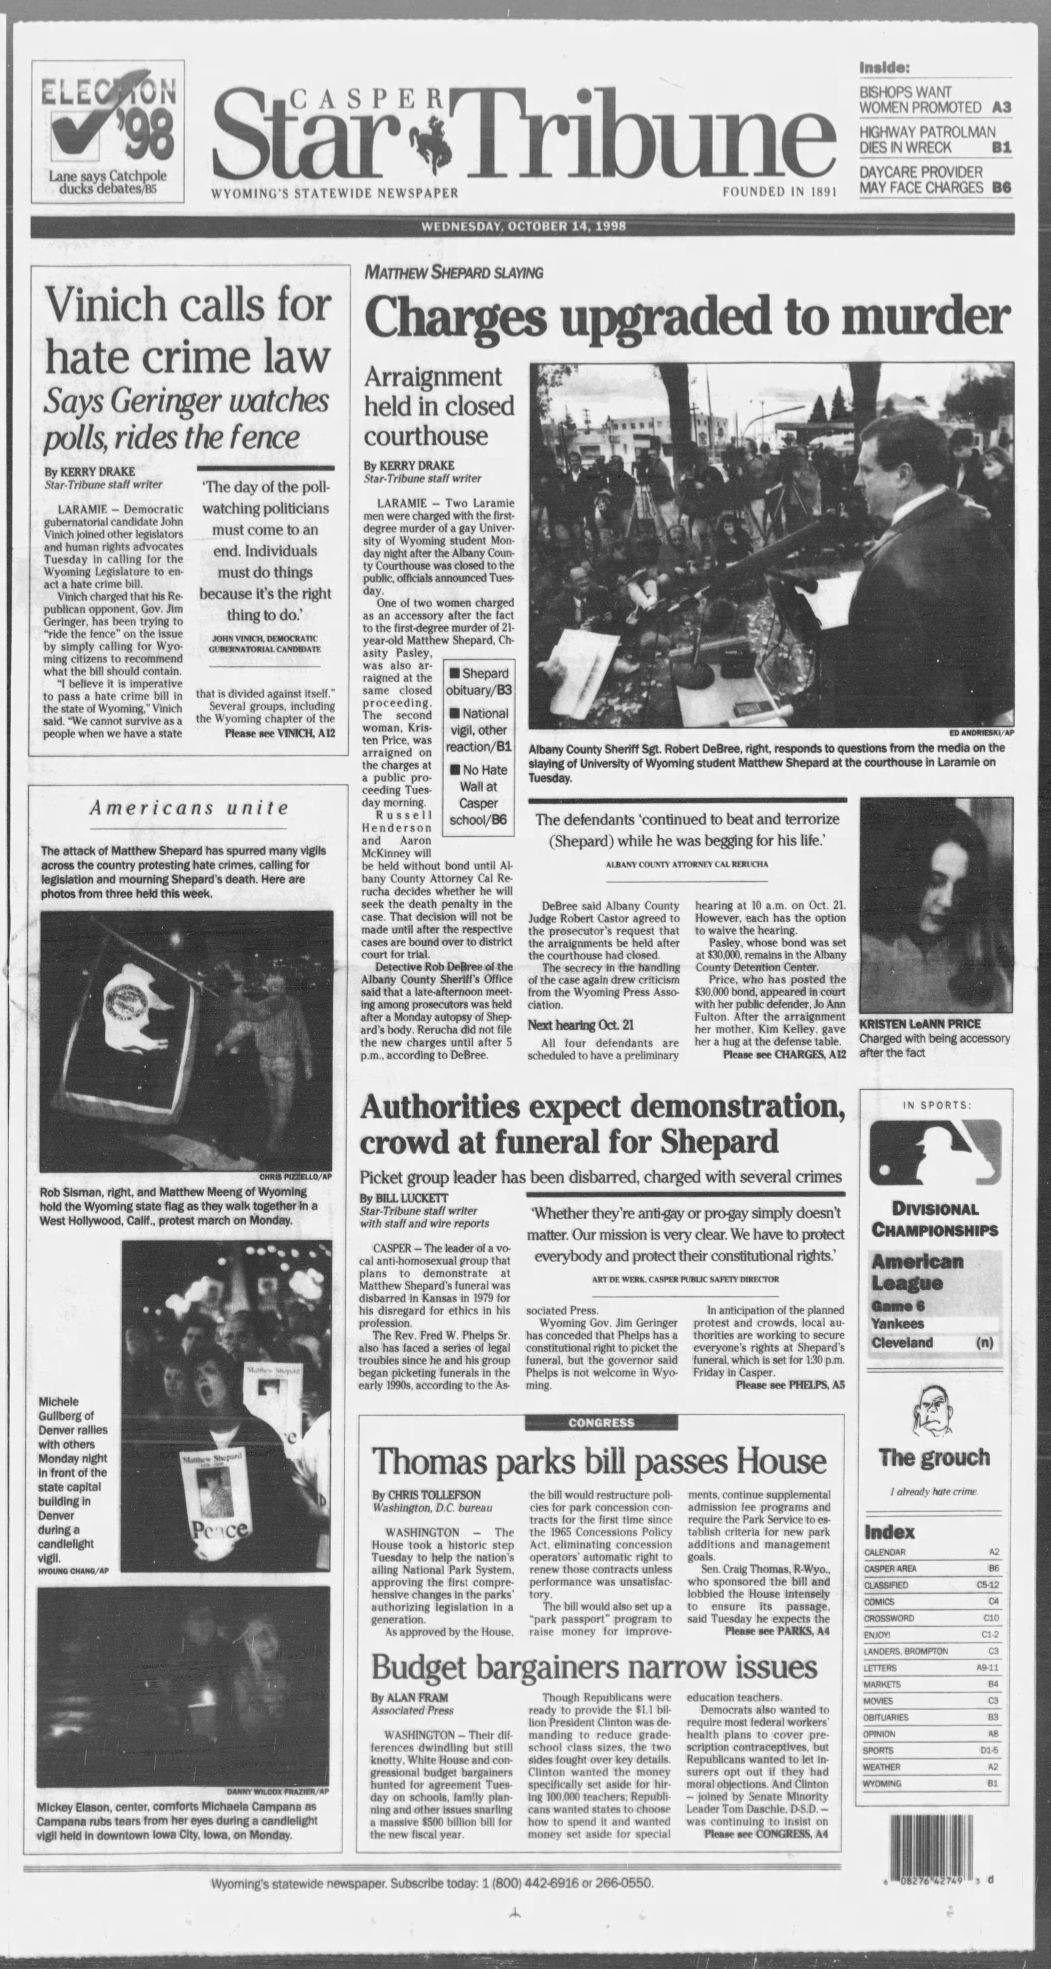 The Casper Star Tribune s coverage of Matthew Shepard s trials that followed Casper